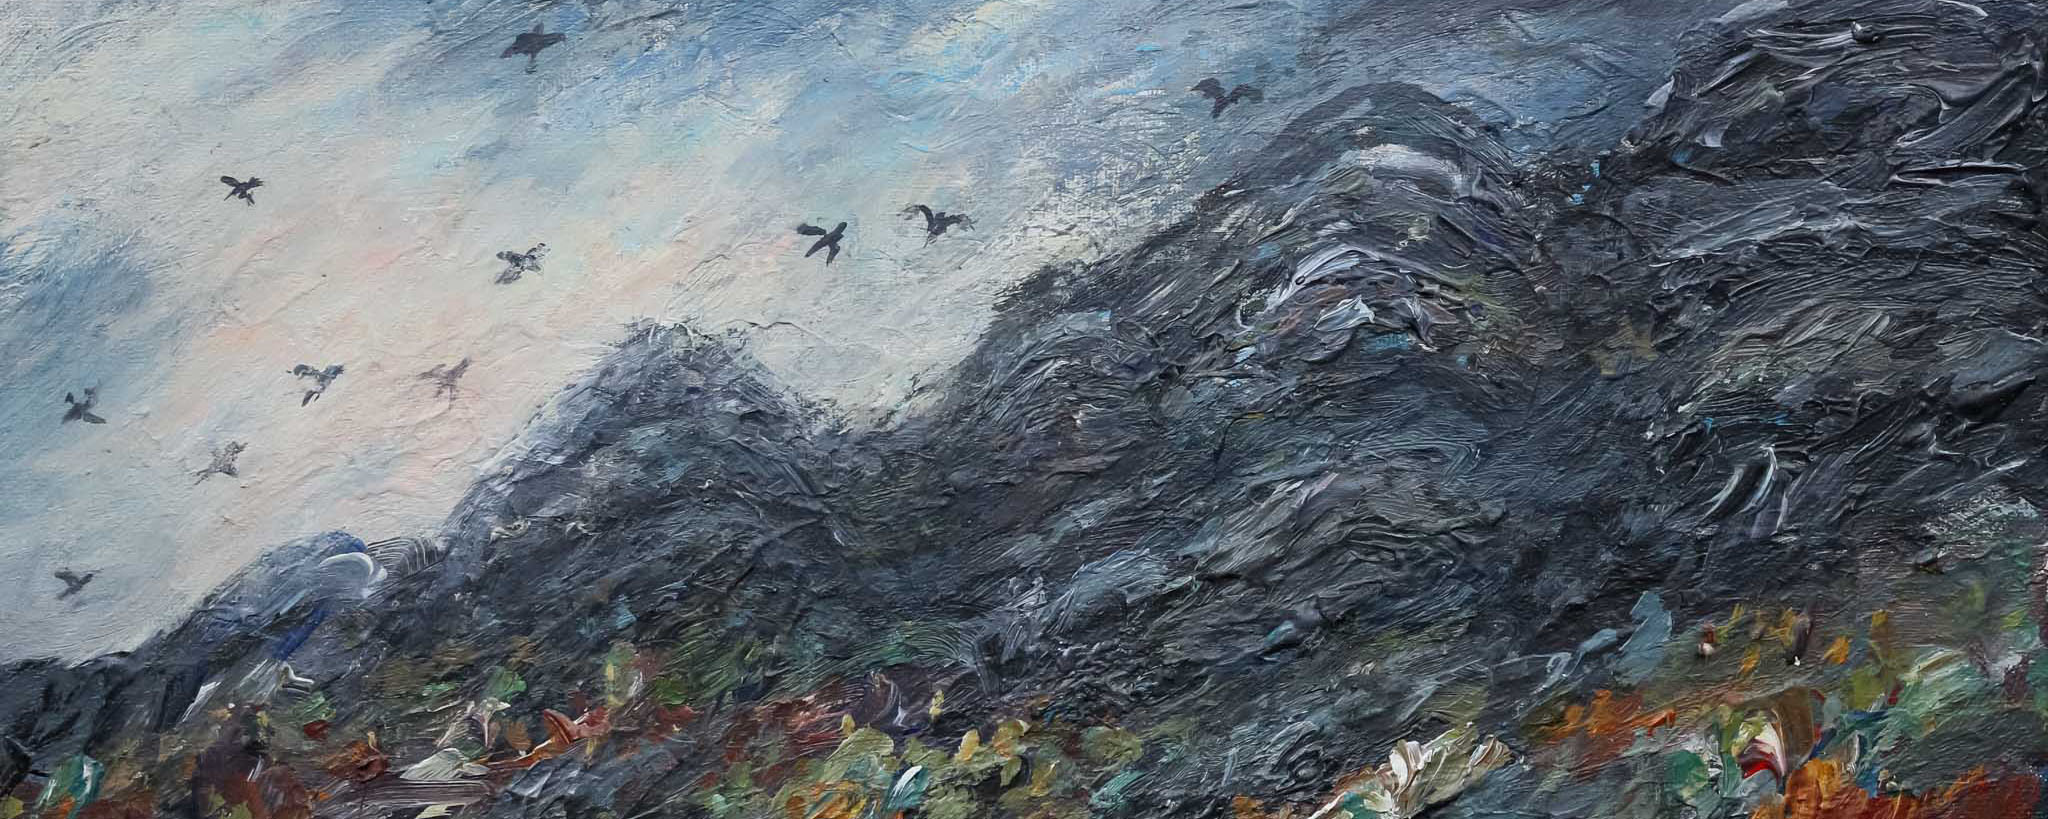 Crows over the edgeMixed media 50x60cm.jpg